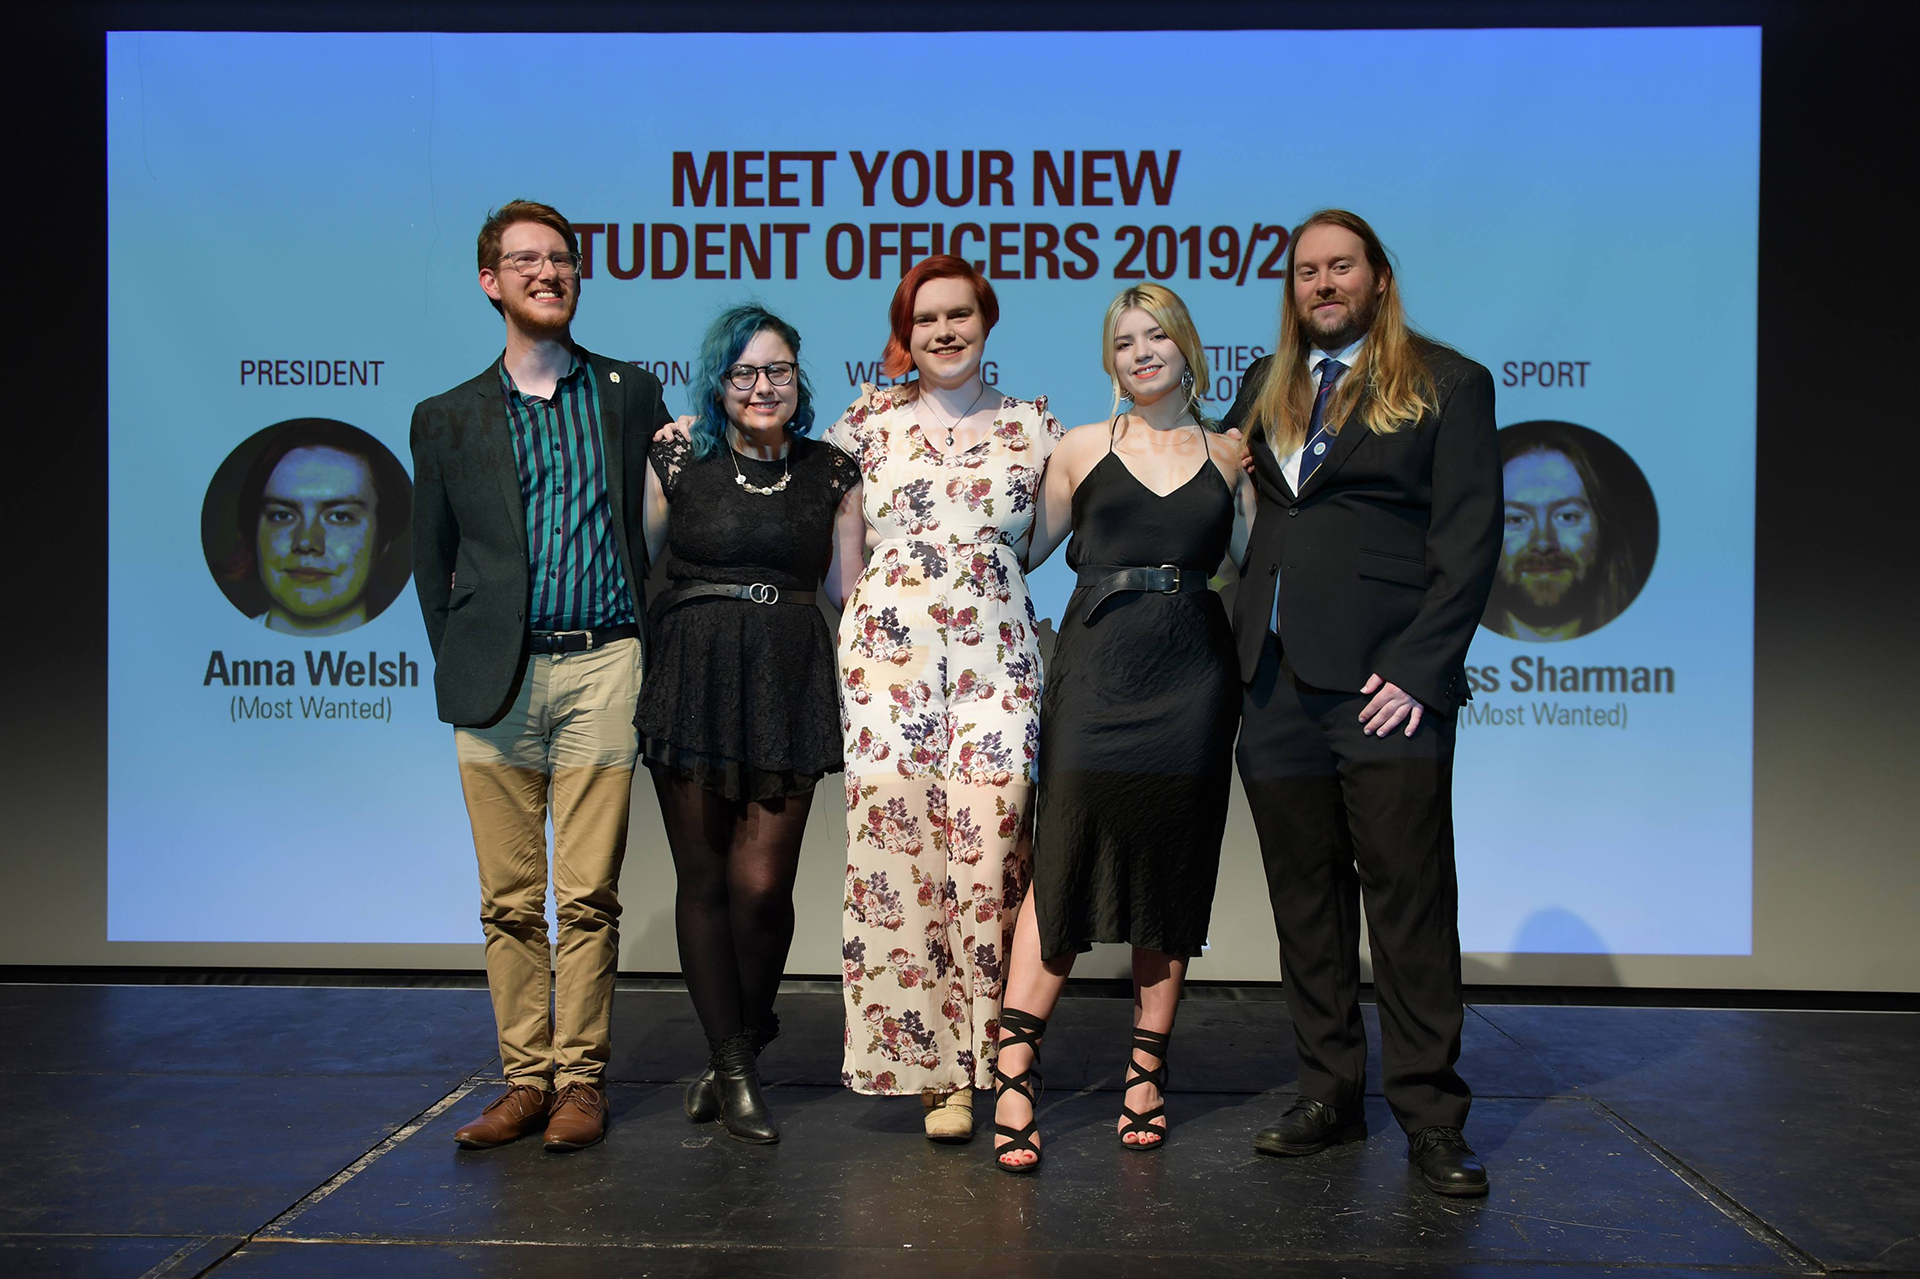 New Elected Student Student Officer Team Revealed Manchester Metropolitan University Students Union